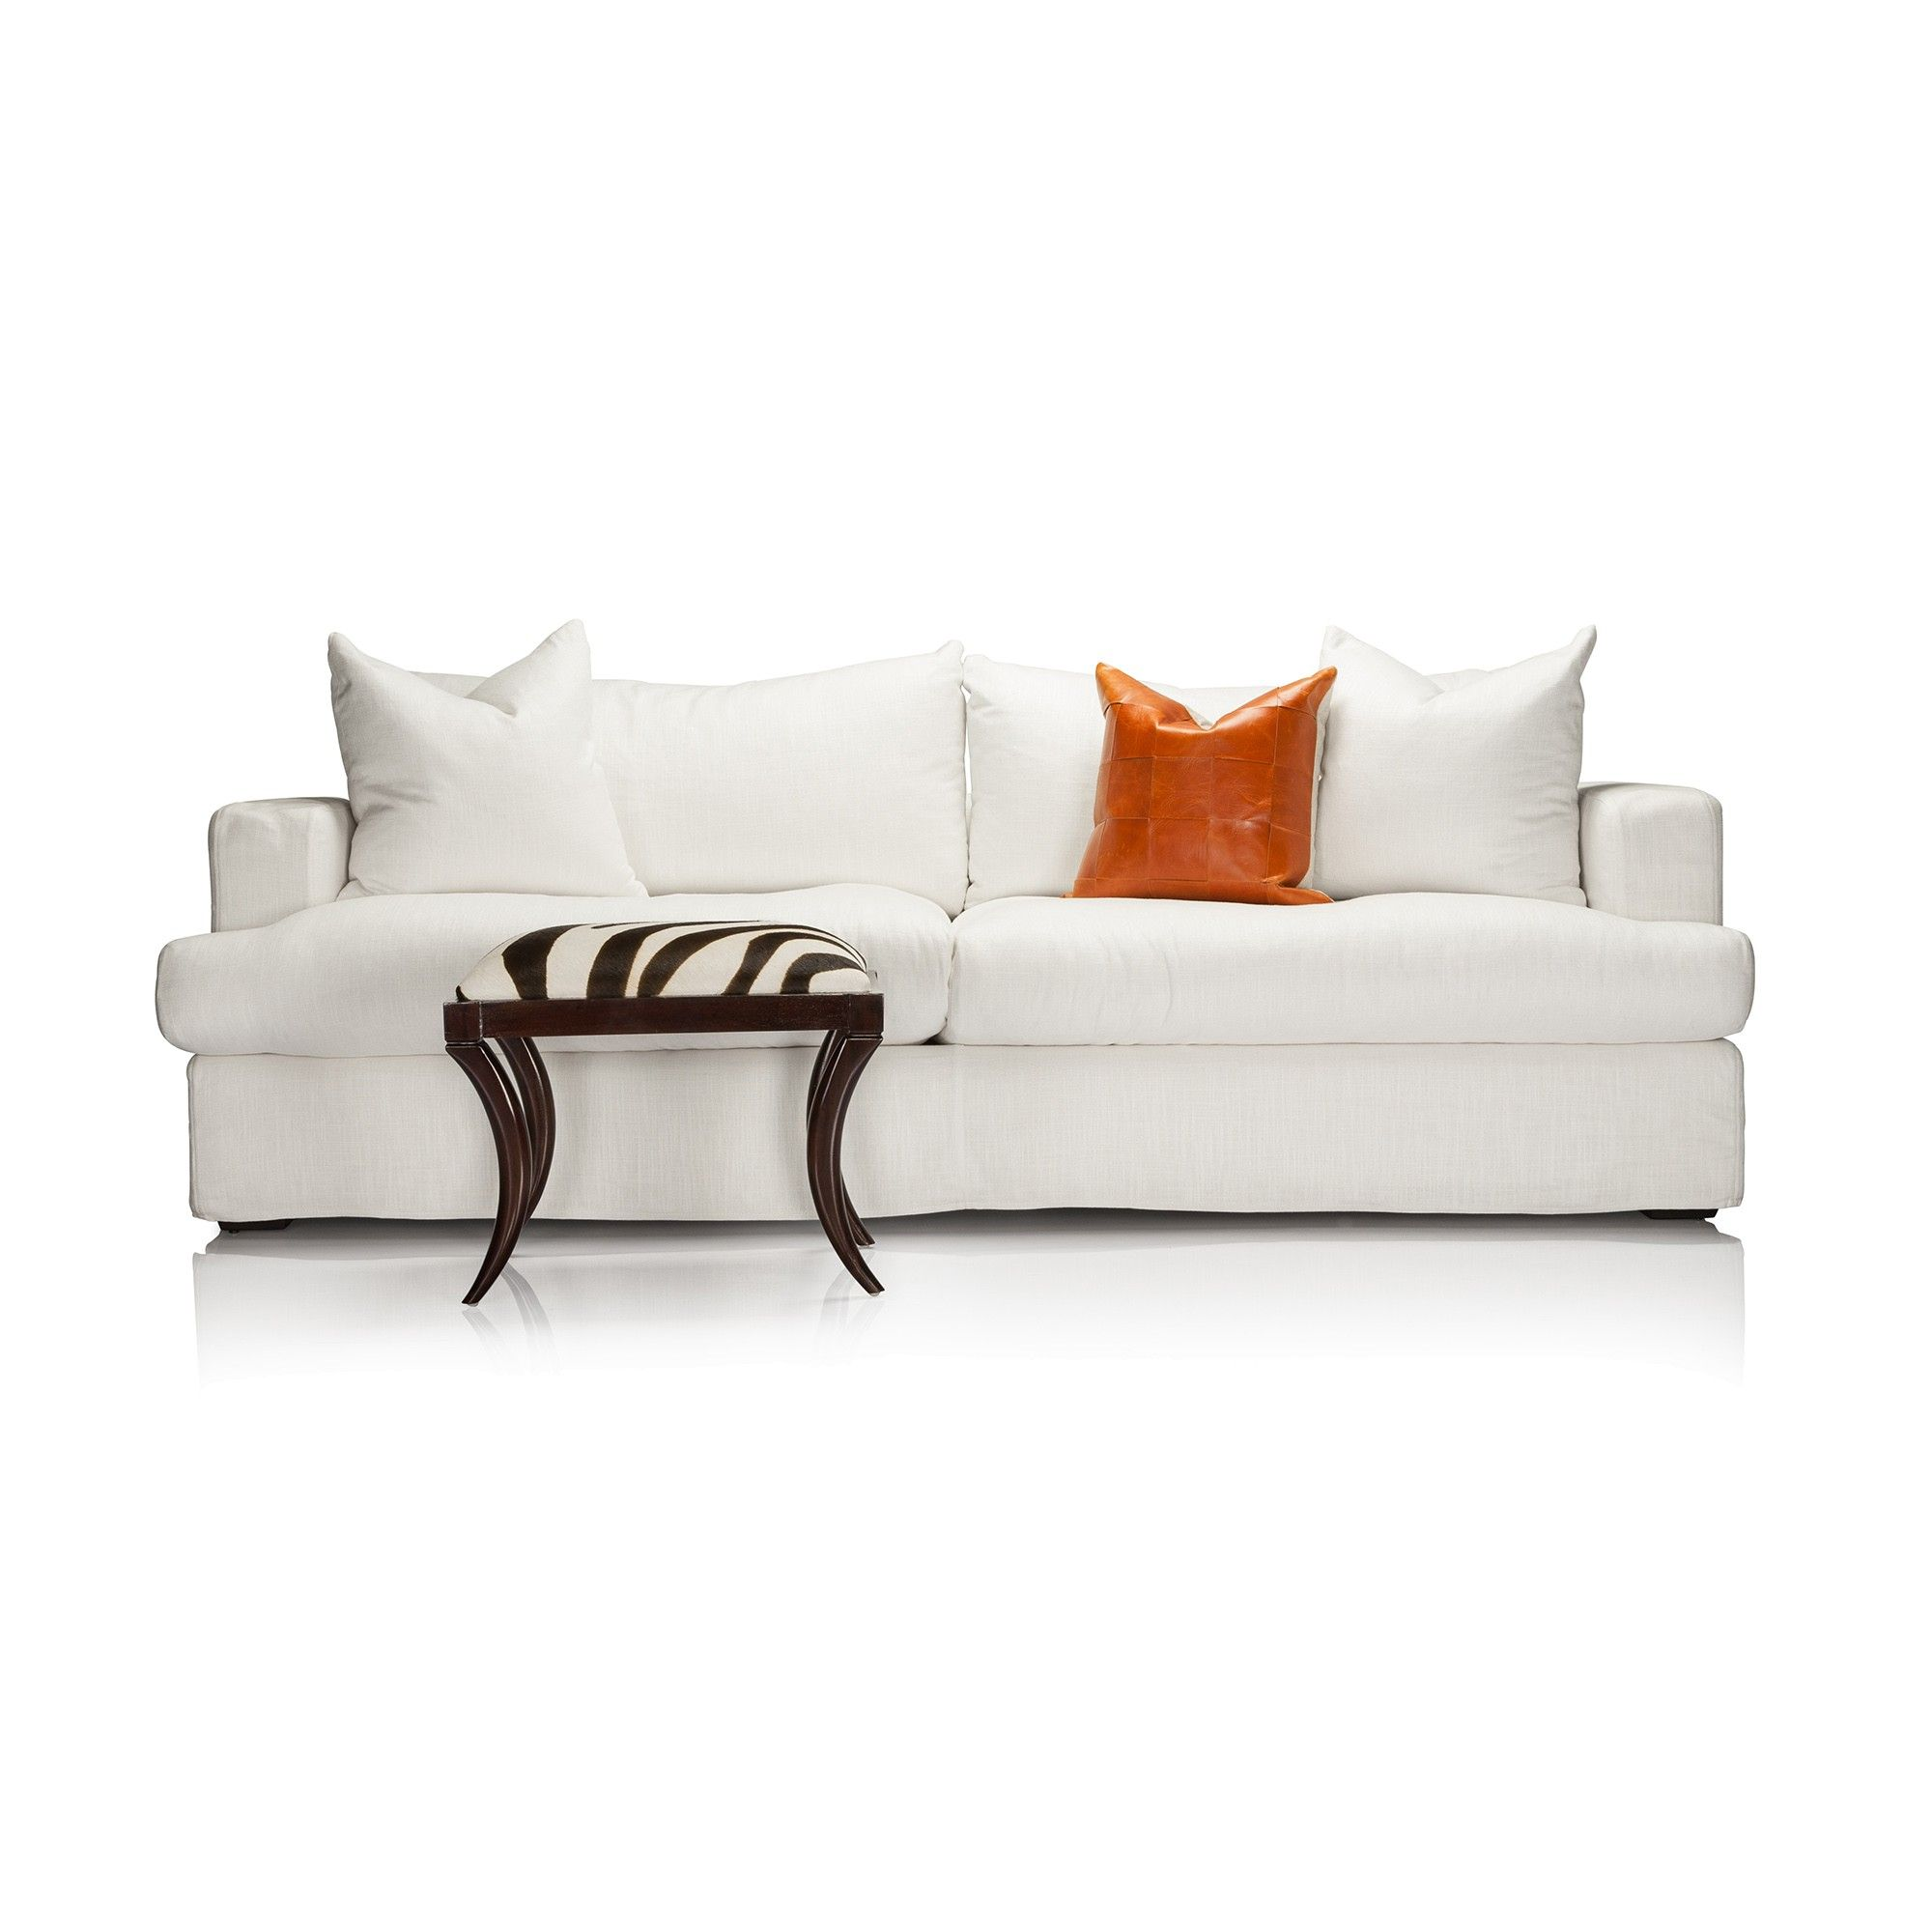 Comfortable Contemporary Sofa With Upscale Style And Deep Seated Design  Ideal For Mid To Large